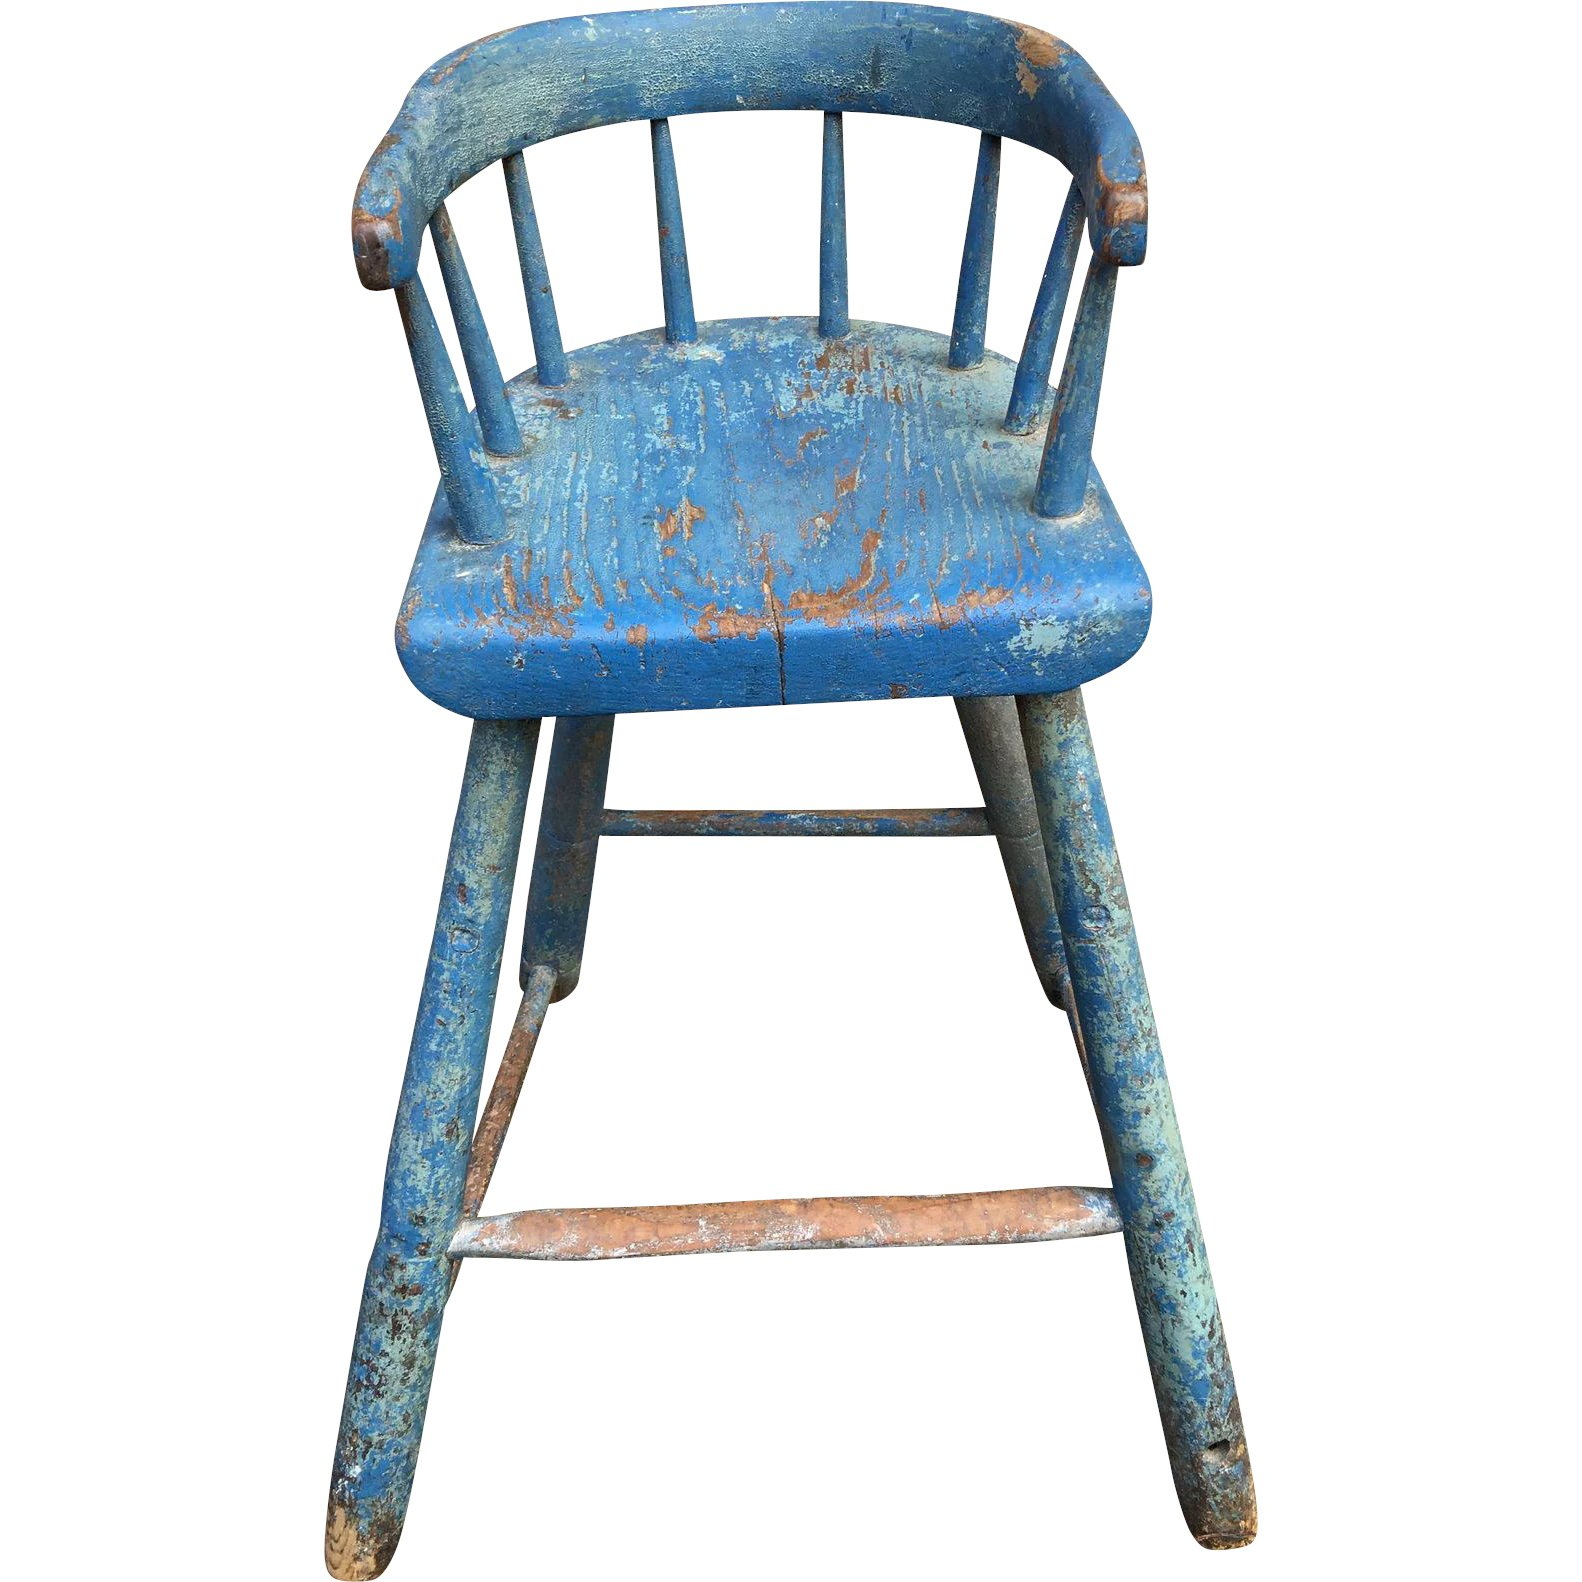 Windsor Youth Chair With Blue Paint : Eric T. Shephard American Antiques,  LLC | Ruby Lane